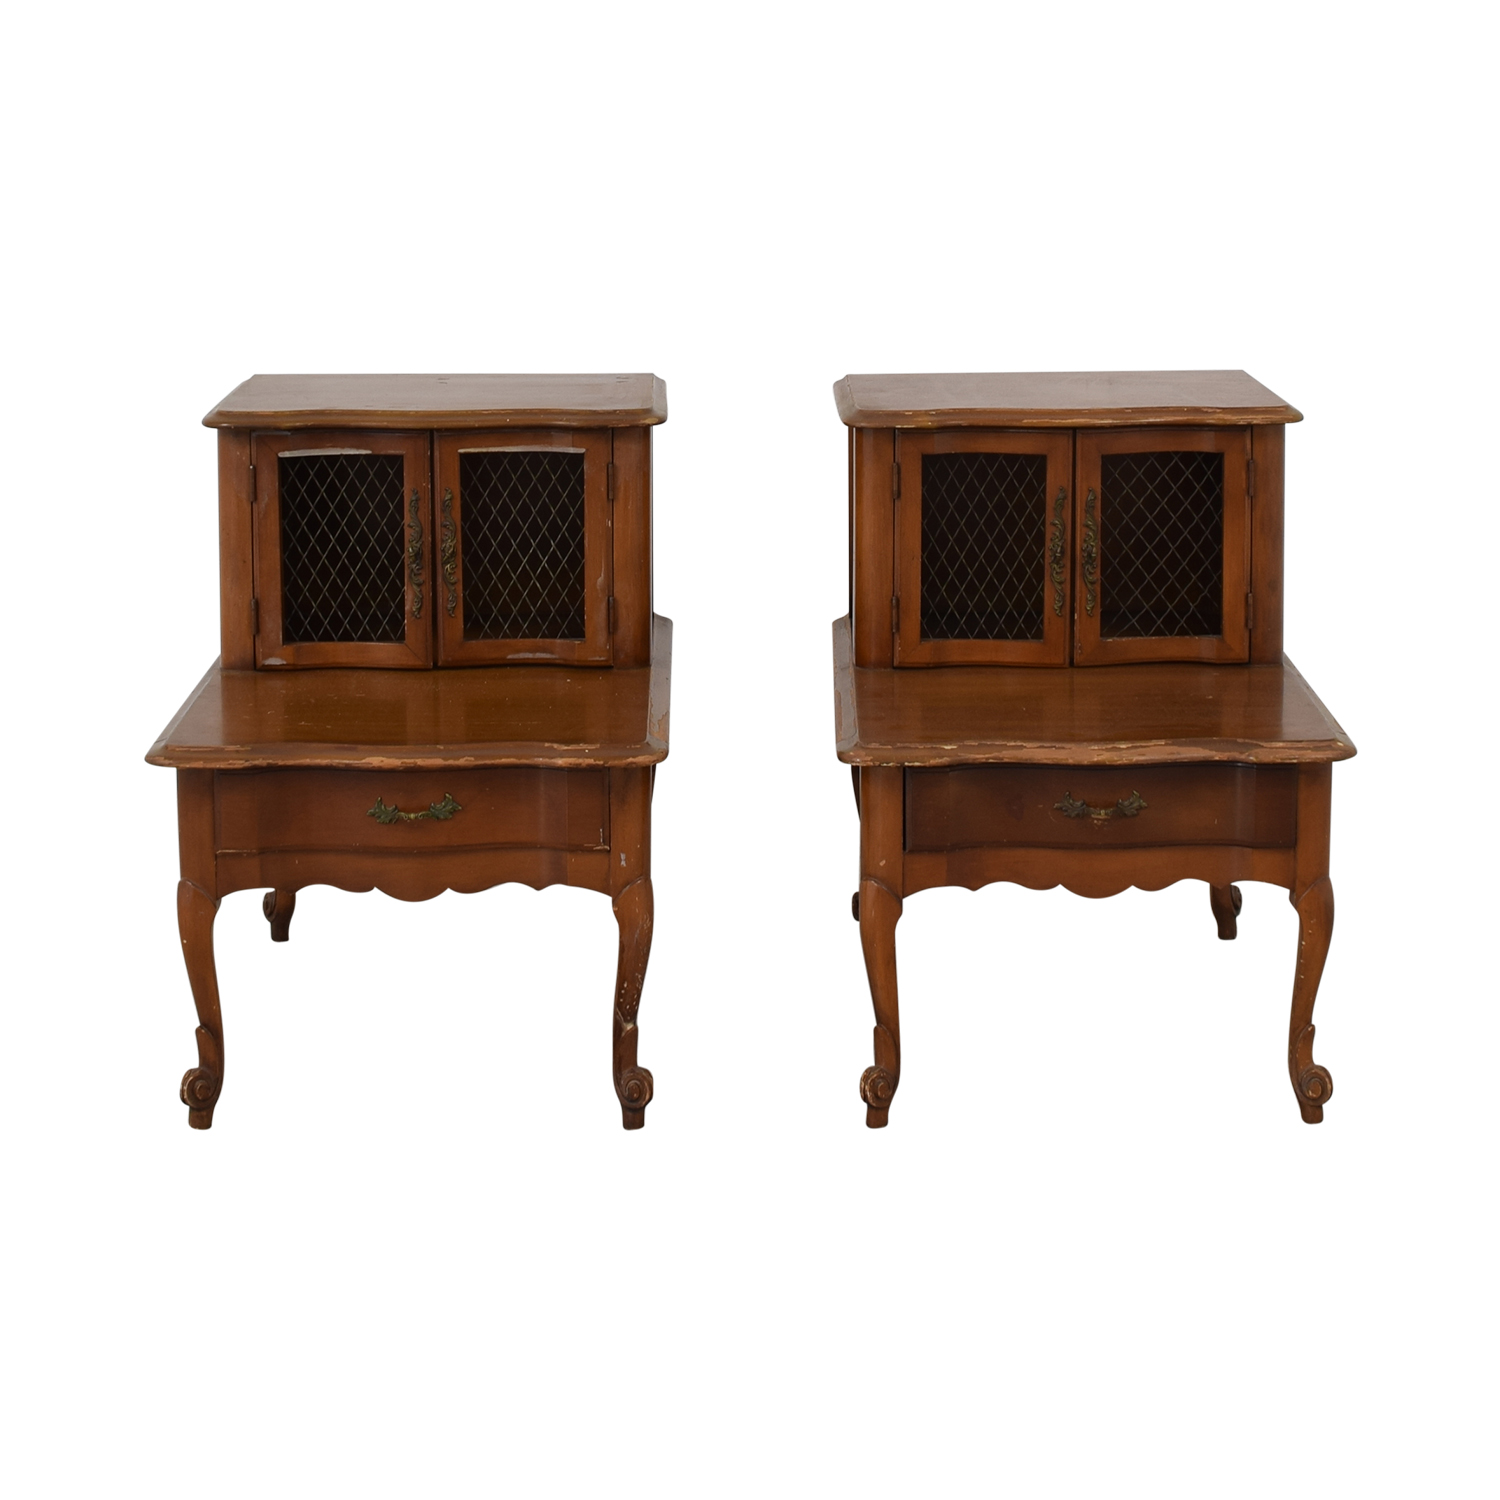 Vanleigh One-Drawer End Tables dimensions